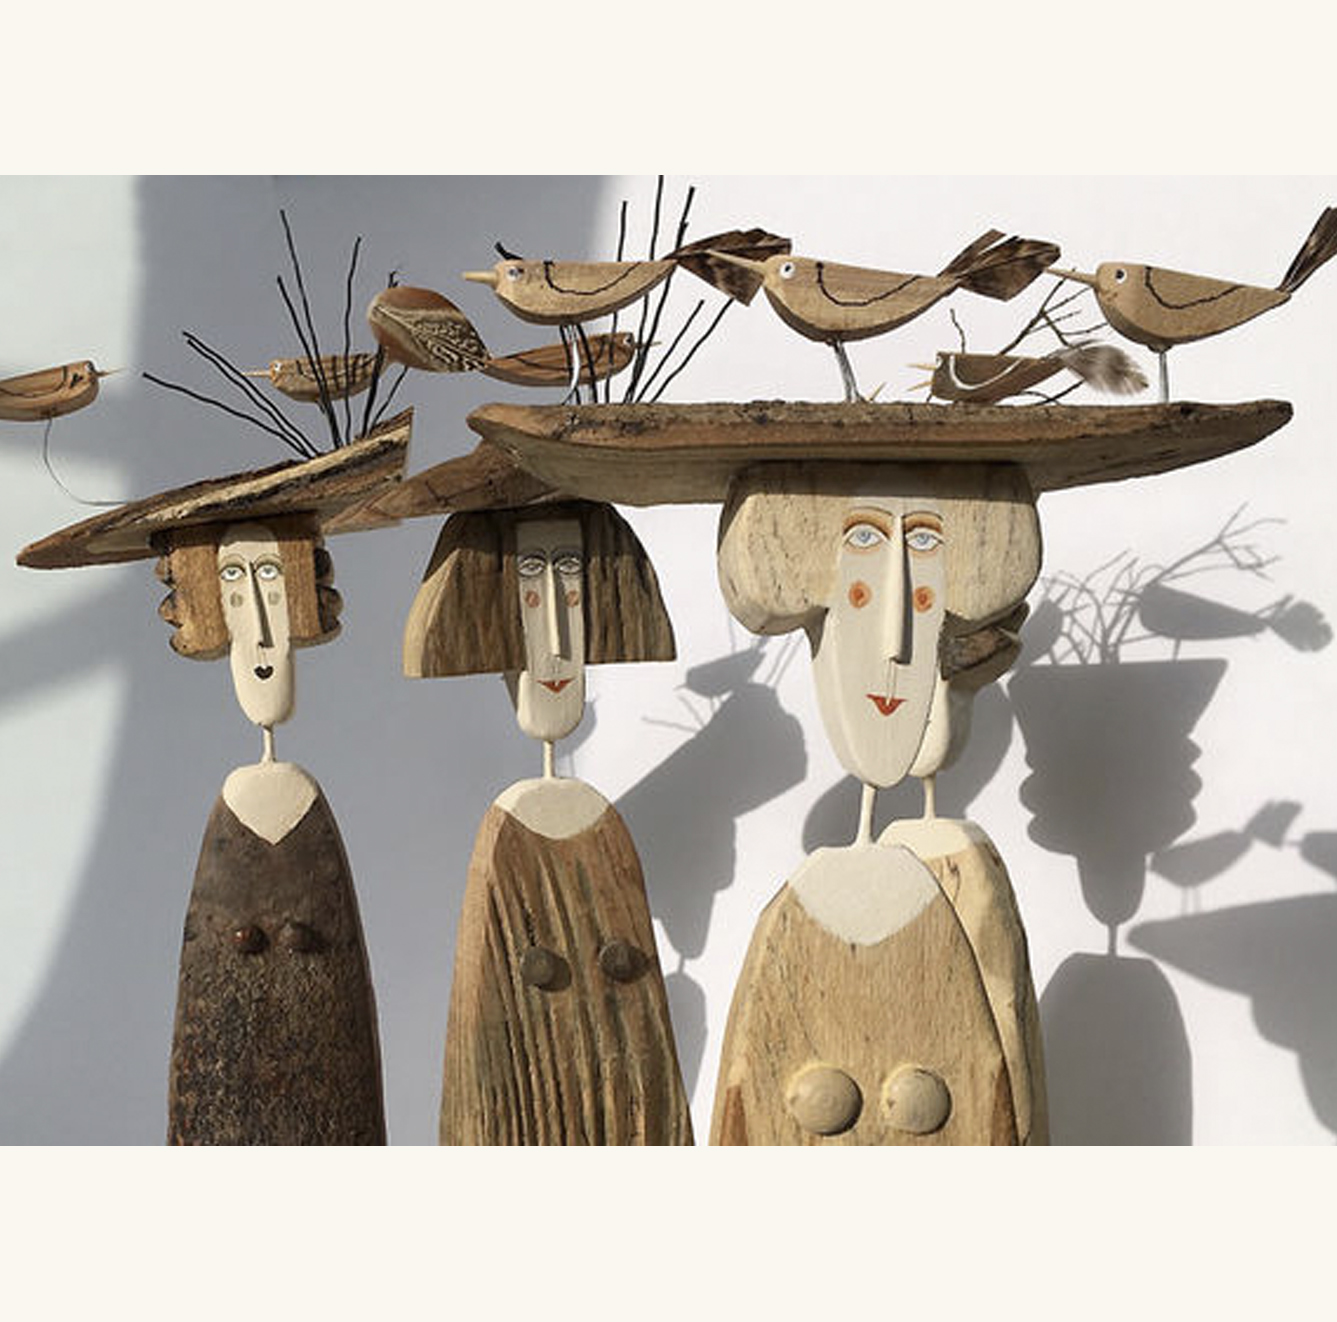 Wood sculptures by Lynn Muir